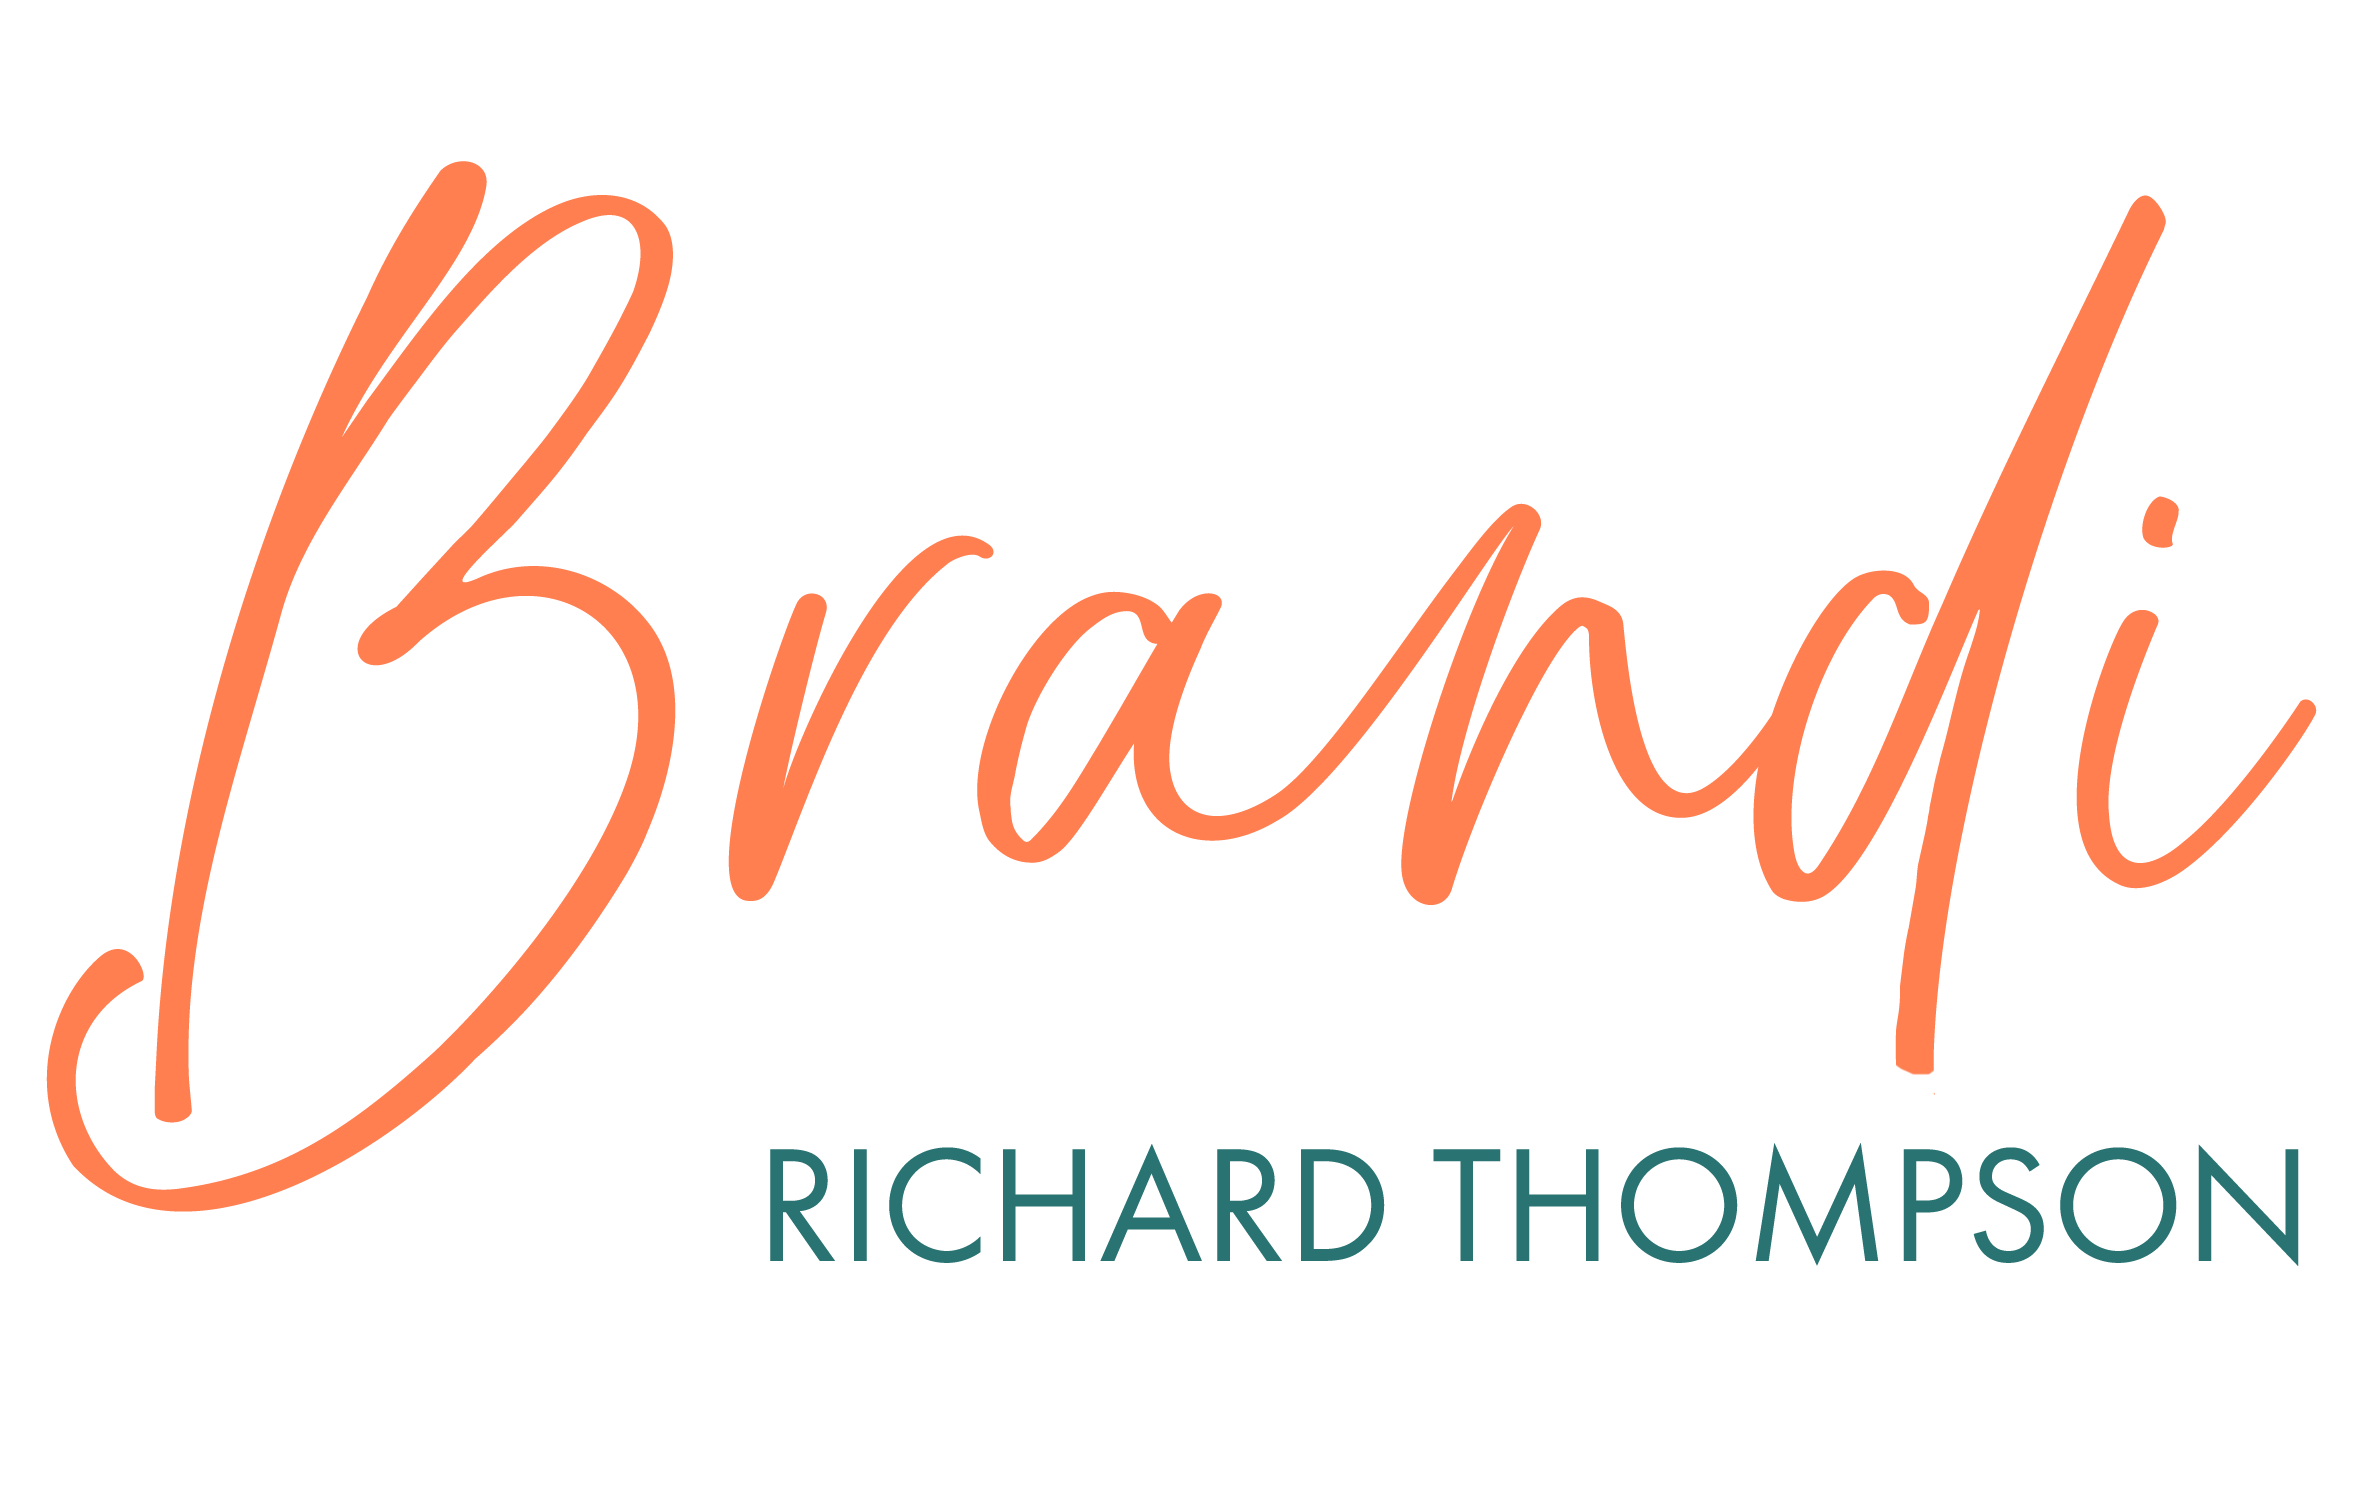 Brandi Richard Thompson - Transformational Coach, Speaker, & Author